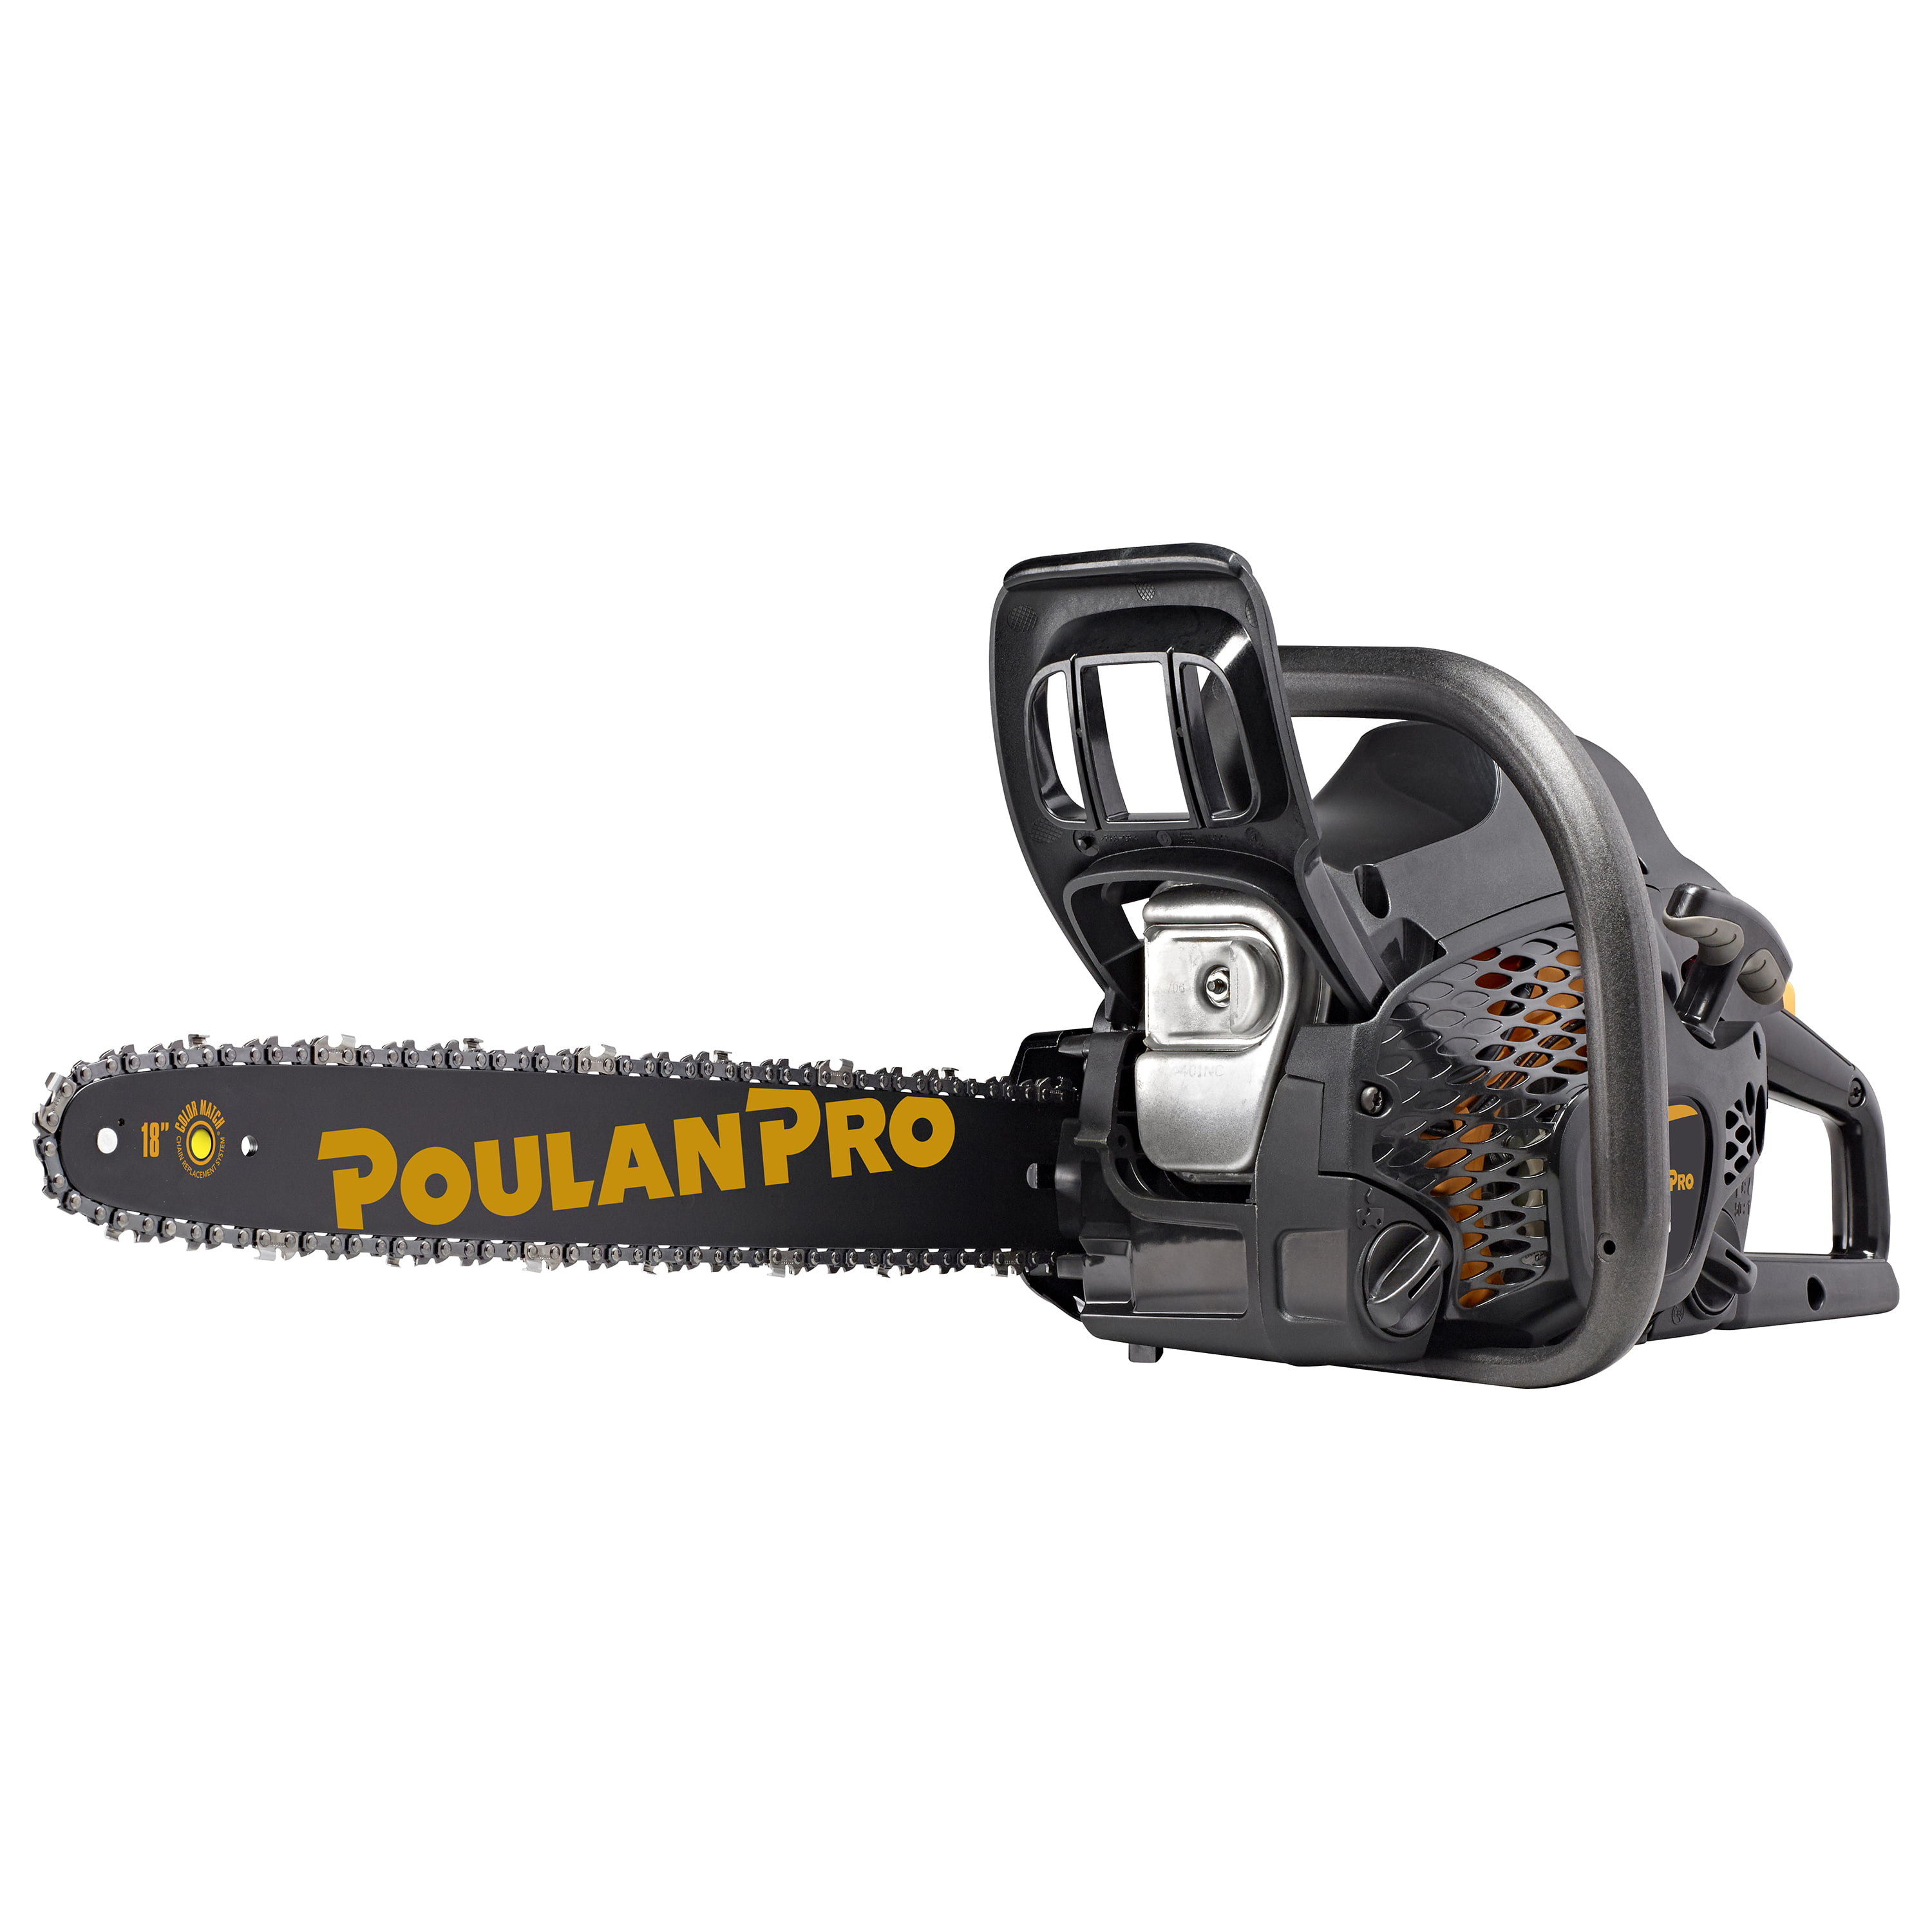 Poulan Pro 18 in. 42cc Two-cycle Gas Powered Chainsaw by Husqvarna